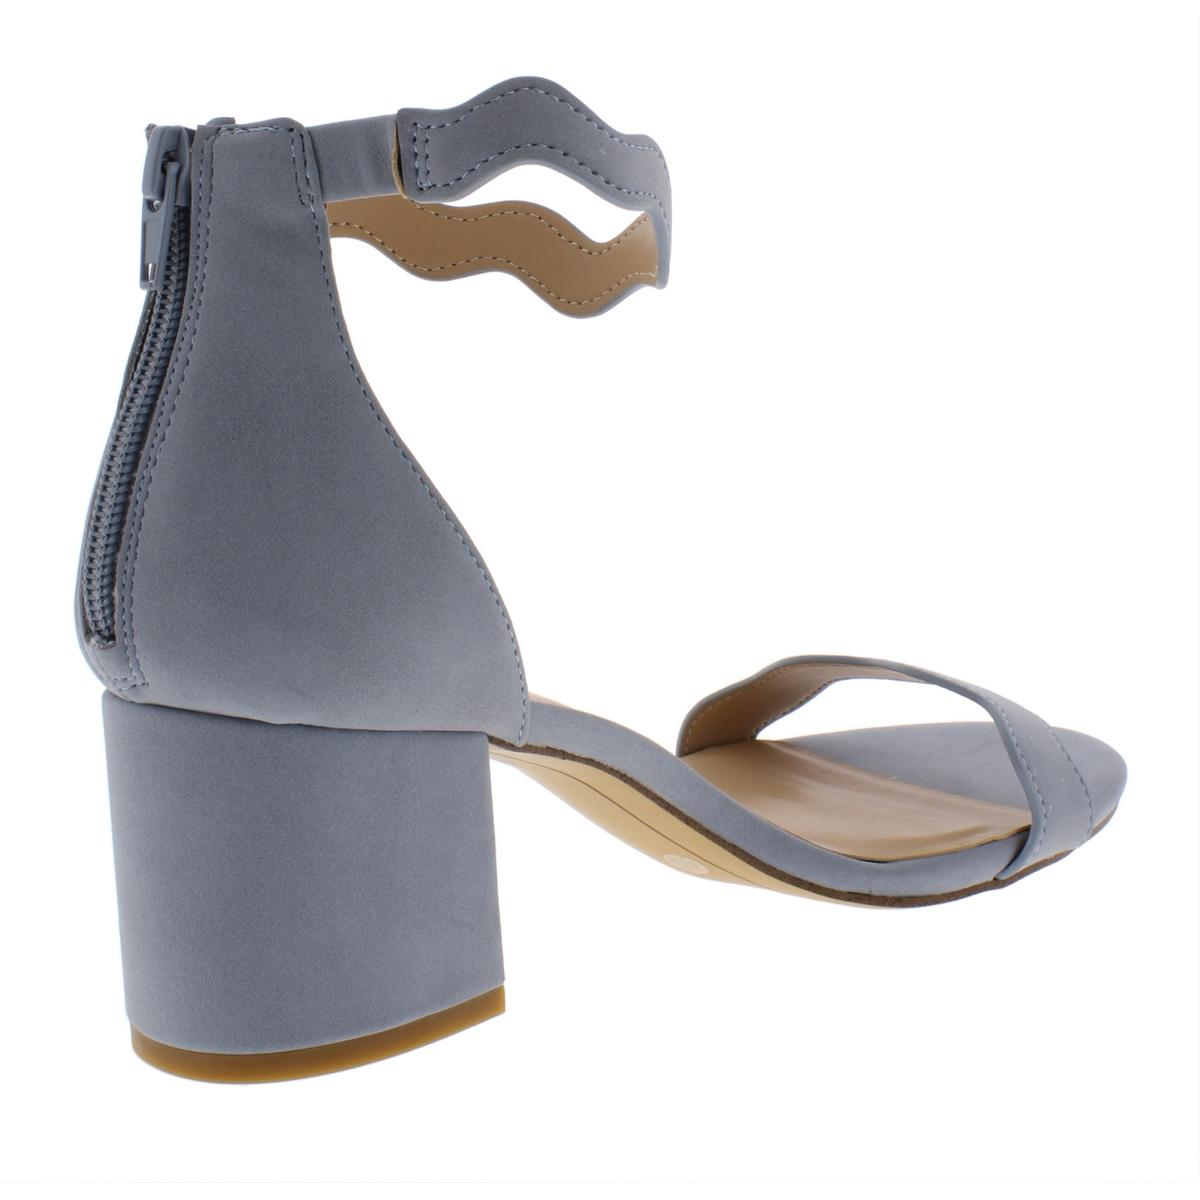 INC-Womens-Hadwin-Faux-Leather-Scalloped-Evening-Heels-Shoes-BHFO-7073 thumbnail 6